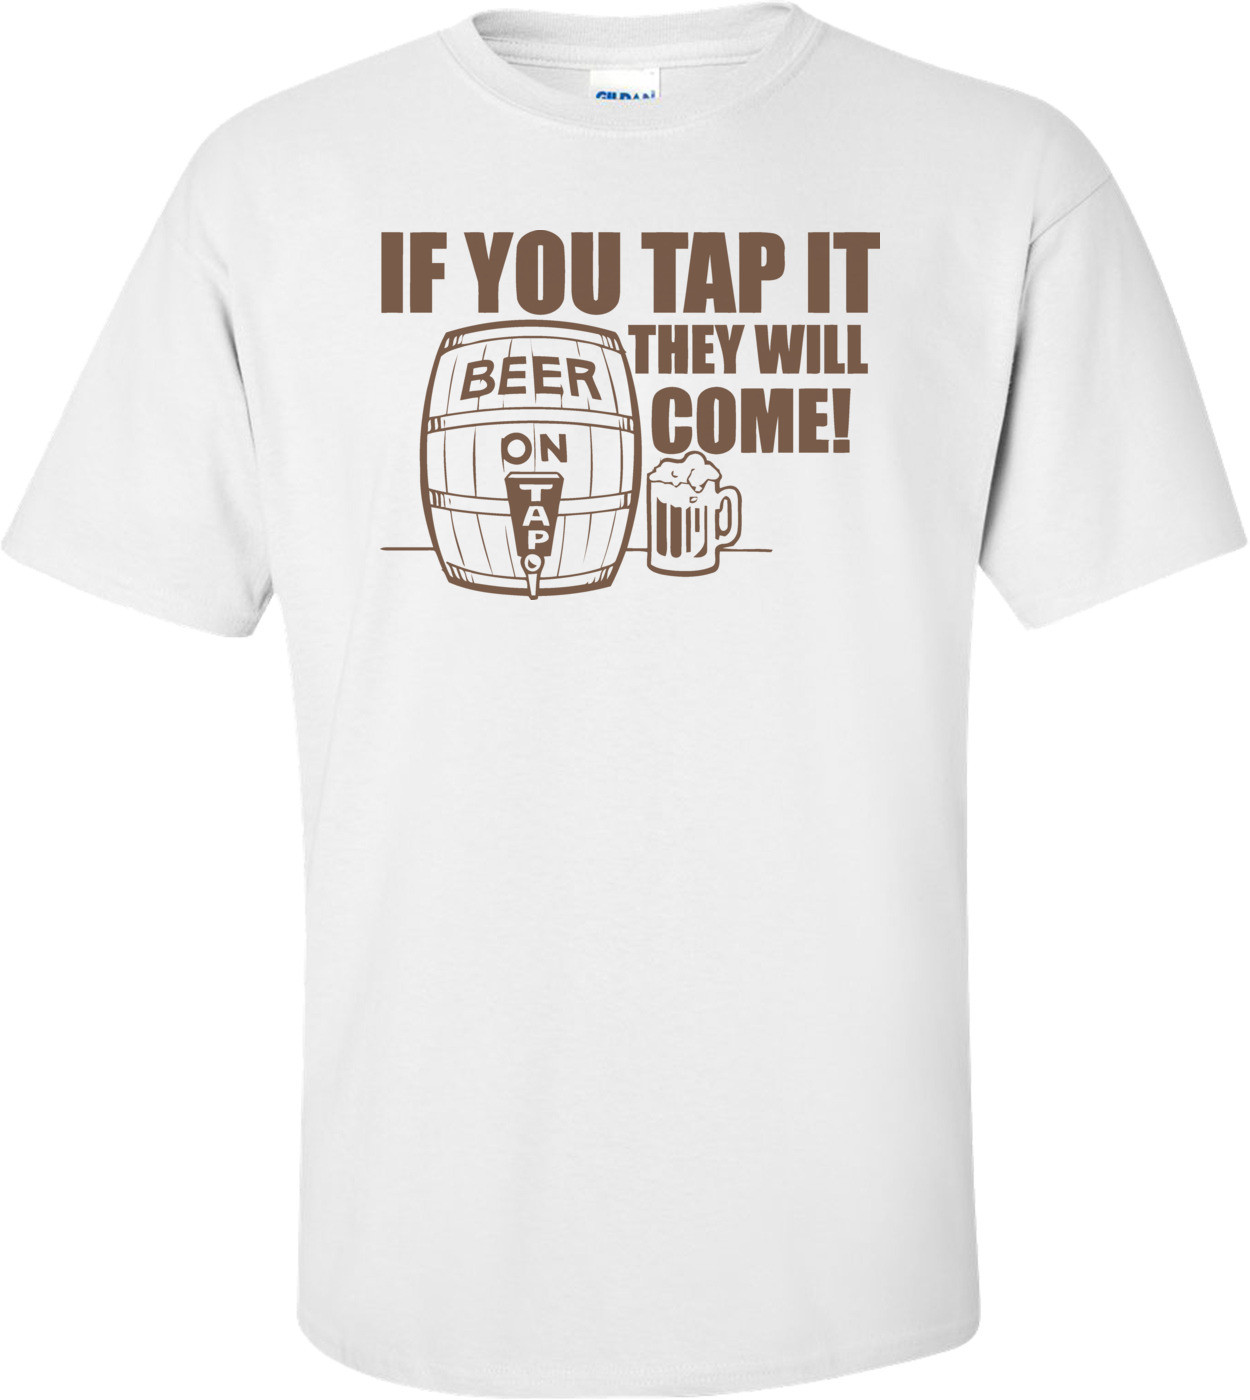 If You Tap It, They Will Come T-shirt